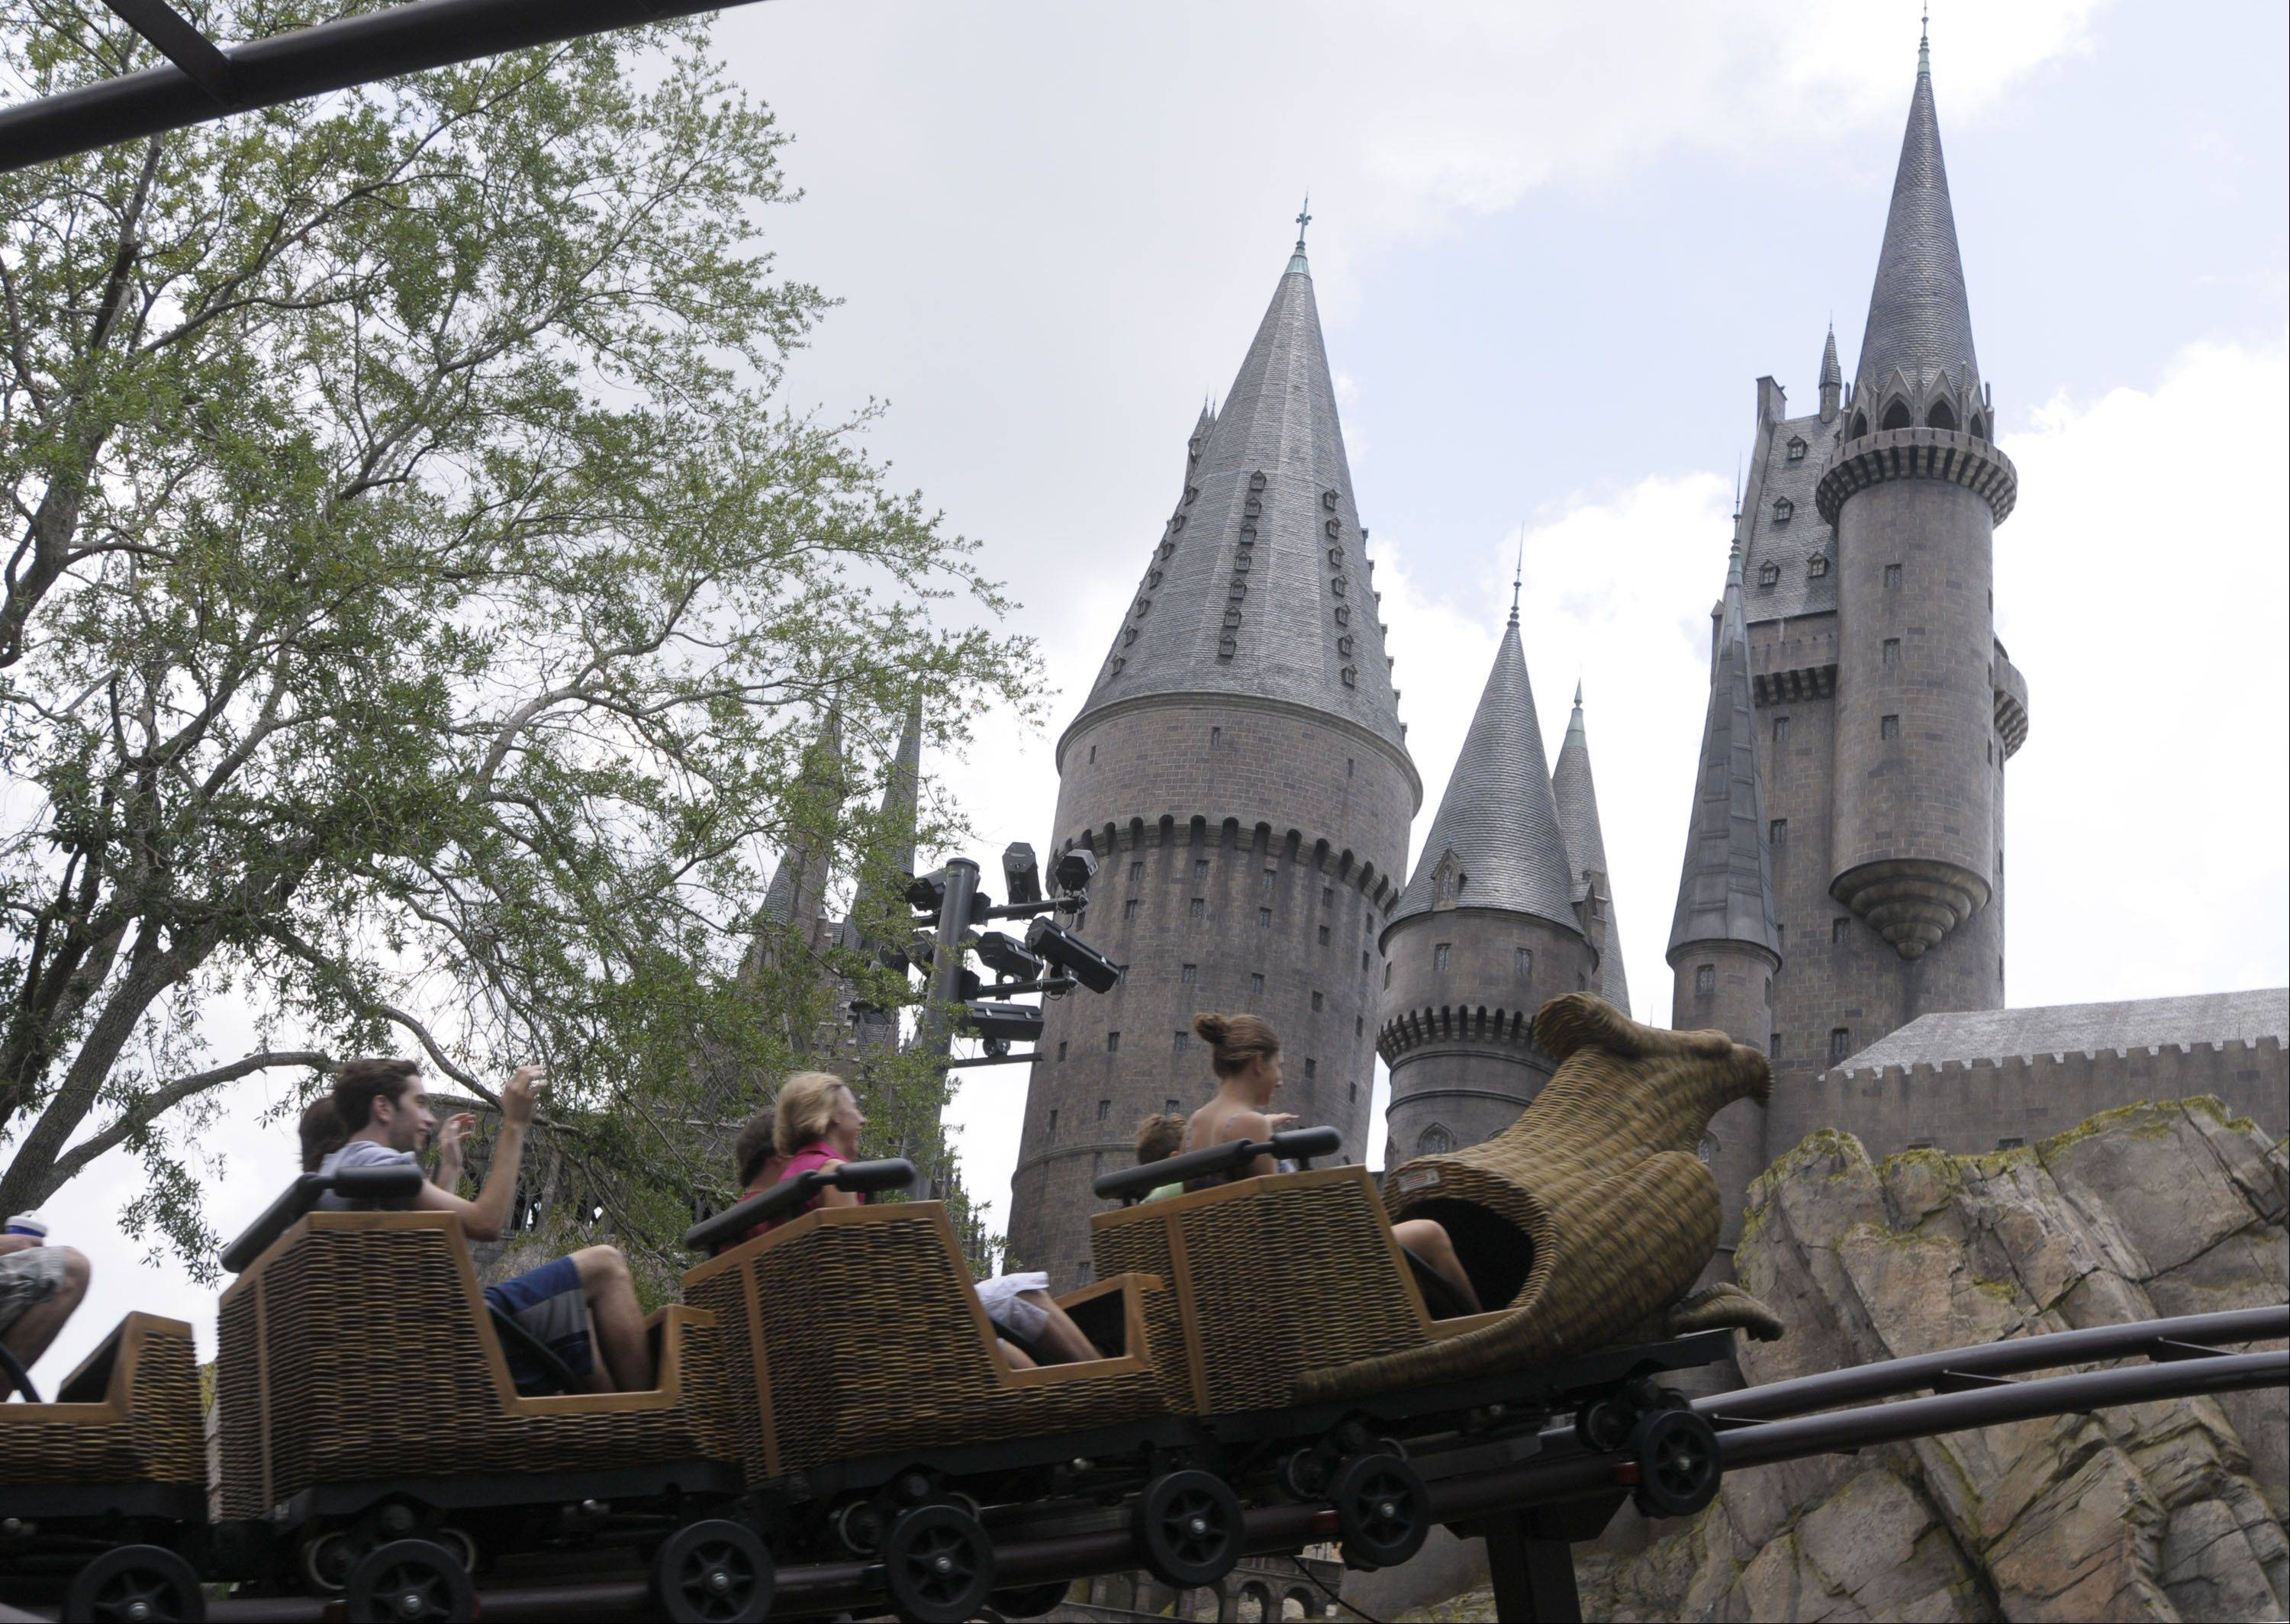 Guests ride on the Flight of the Hippogriff past Hogwarts castle at Universal Studios' Wizarding World of Harry Potter in Orlando, Fla., a popular spring break destination for suburban families.